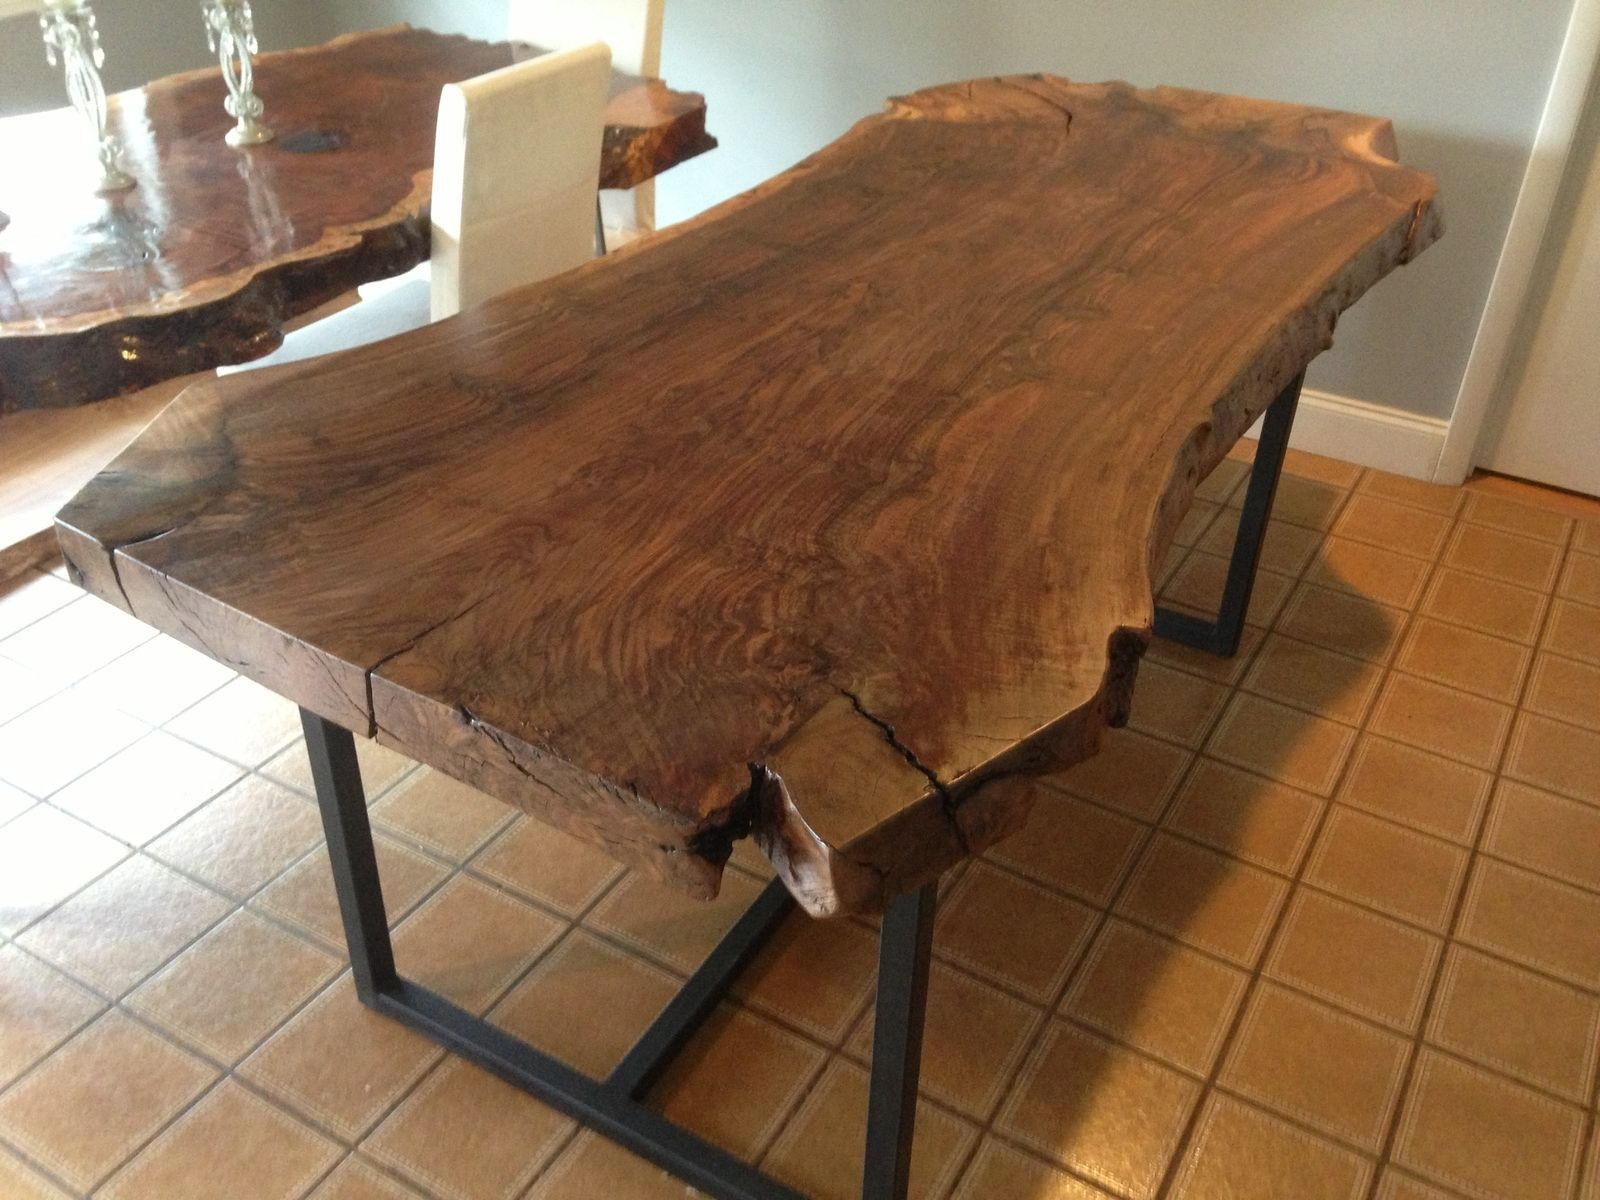 Handmade Live Edge Claro Walnut Dining Table by Ozma Design ...